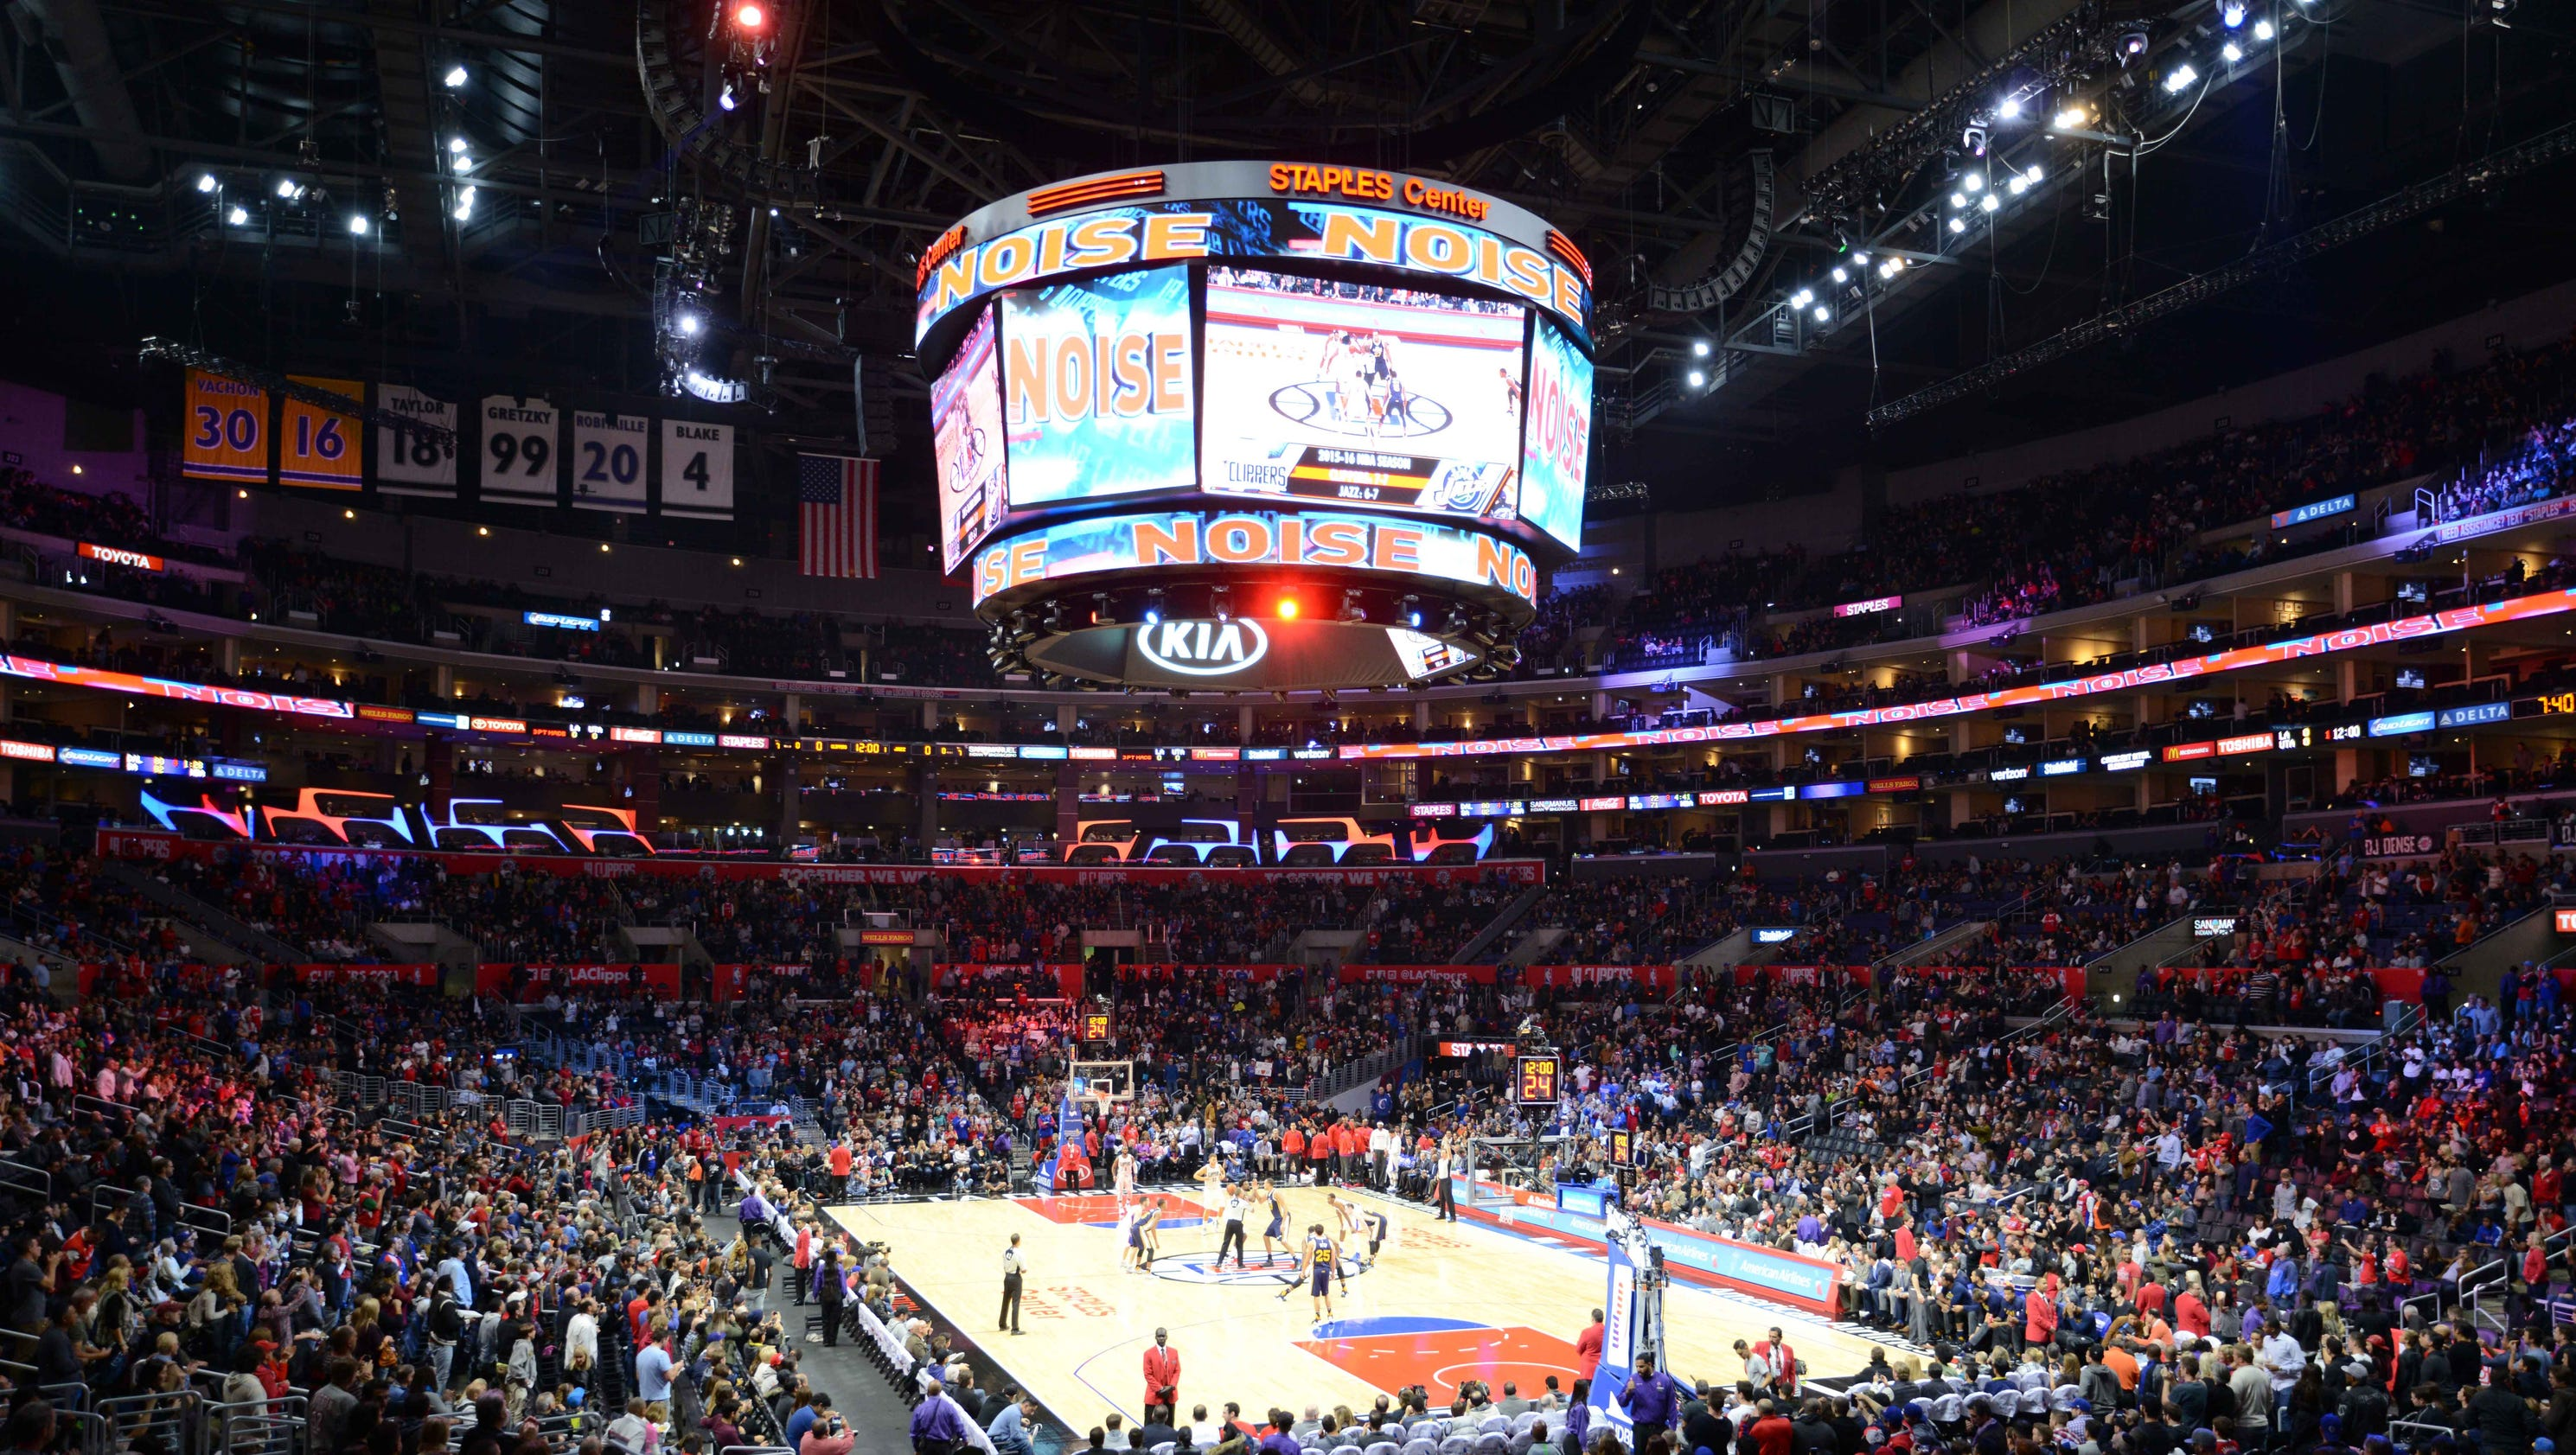 636388264227092490-usp-nba--utah-jazz-at-los-angeles-clippers